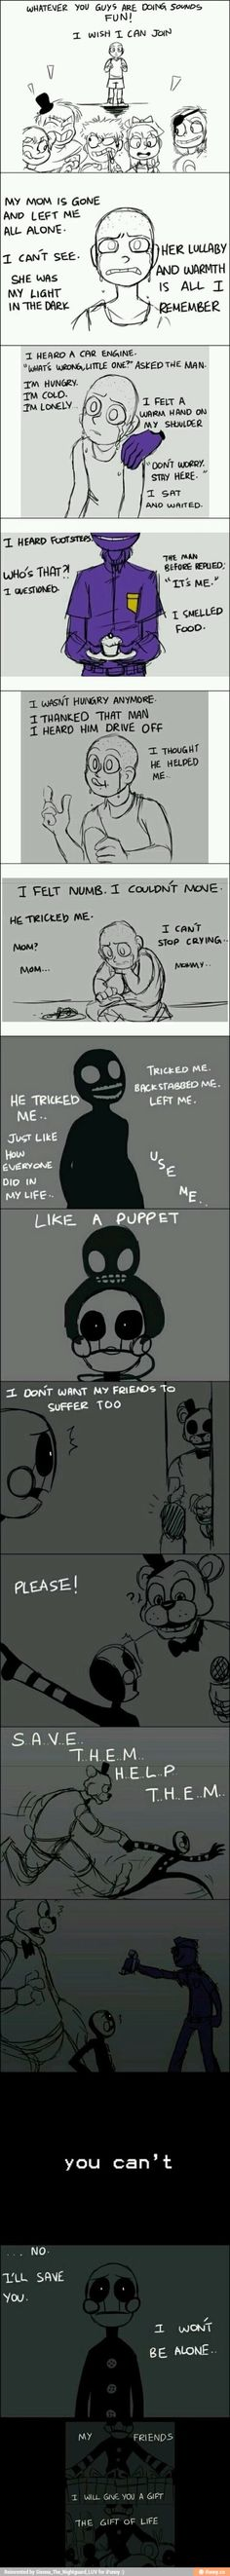 The Puppet, Marionette, Purple Man, Children, SAVE THEM, Freddy, FNAF